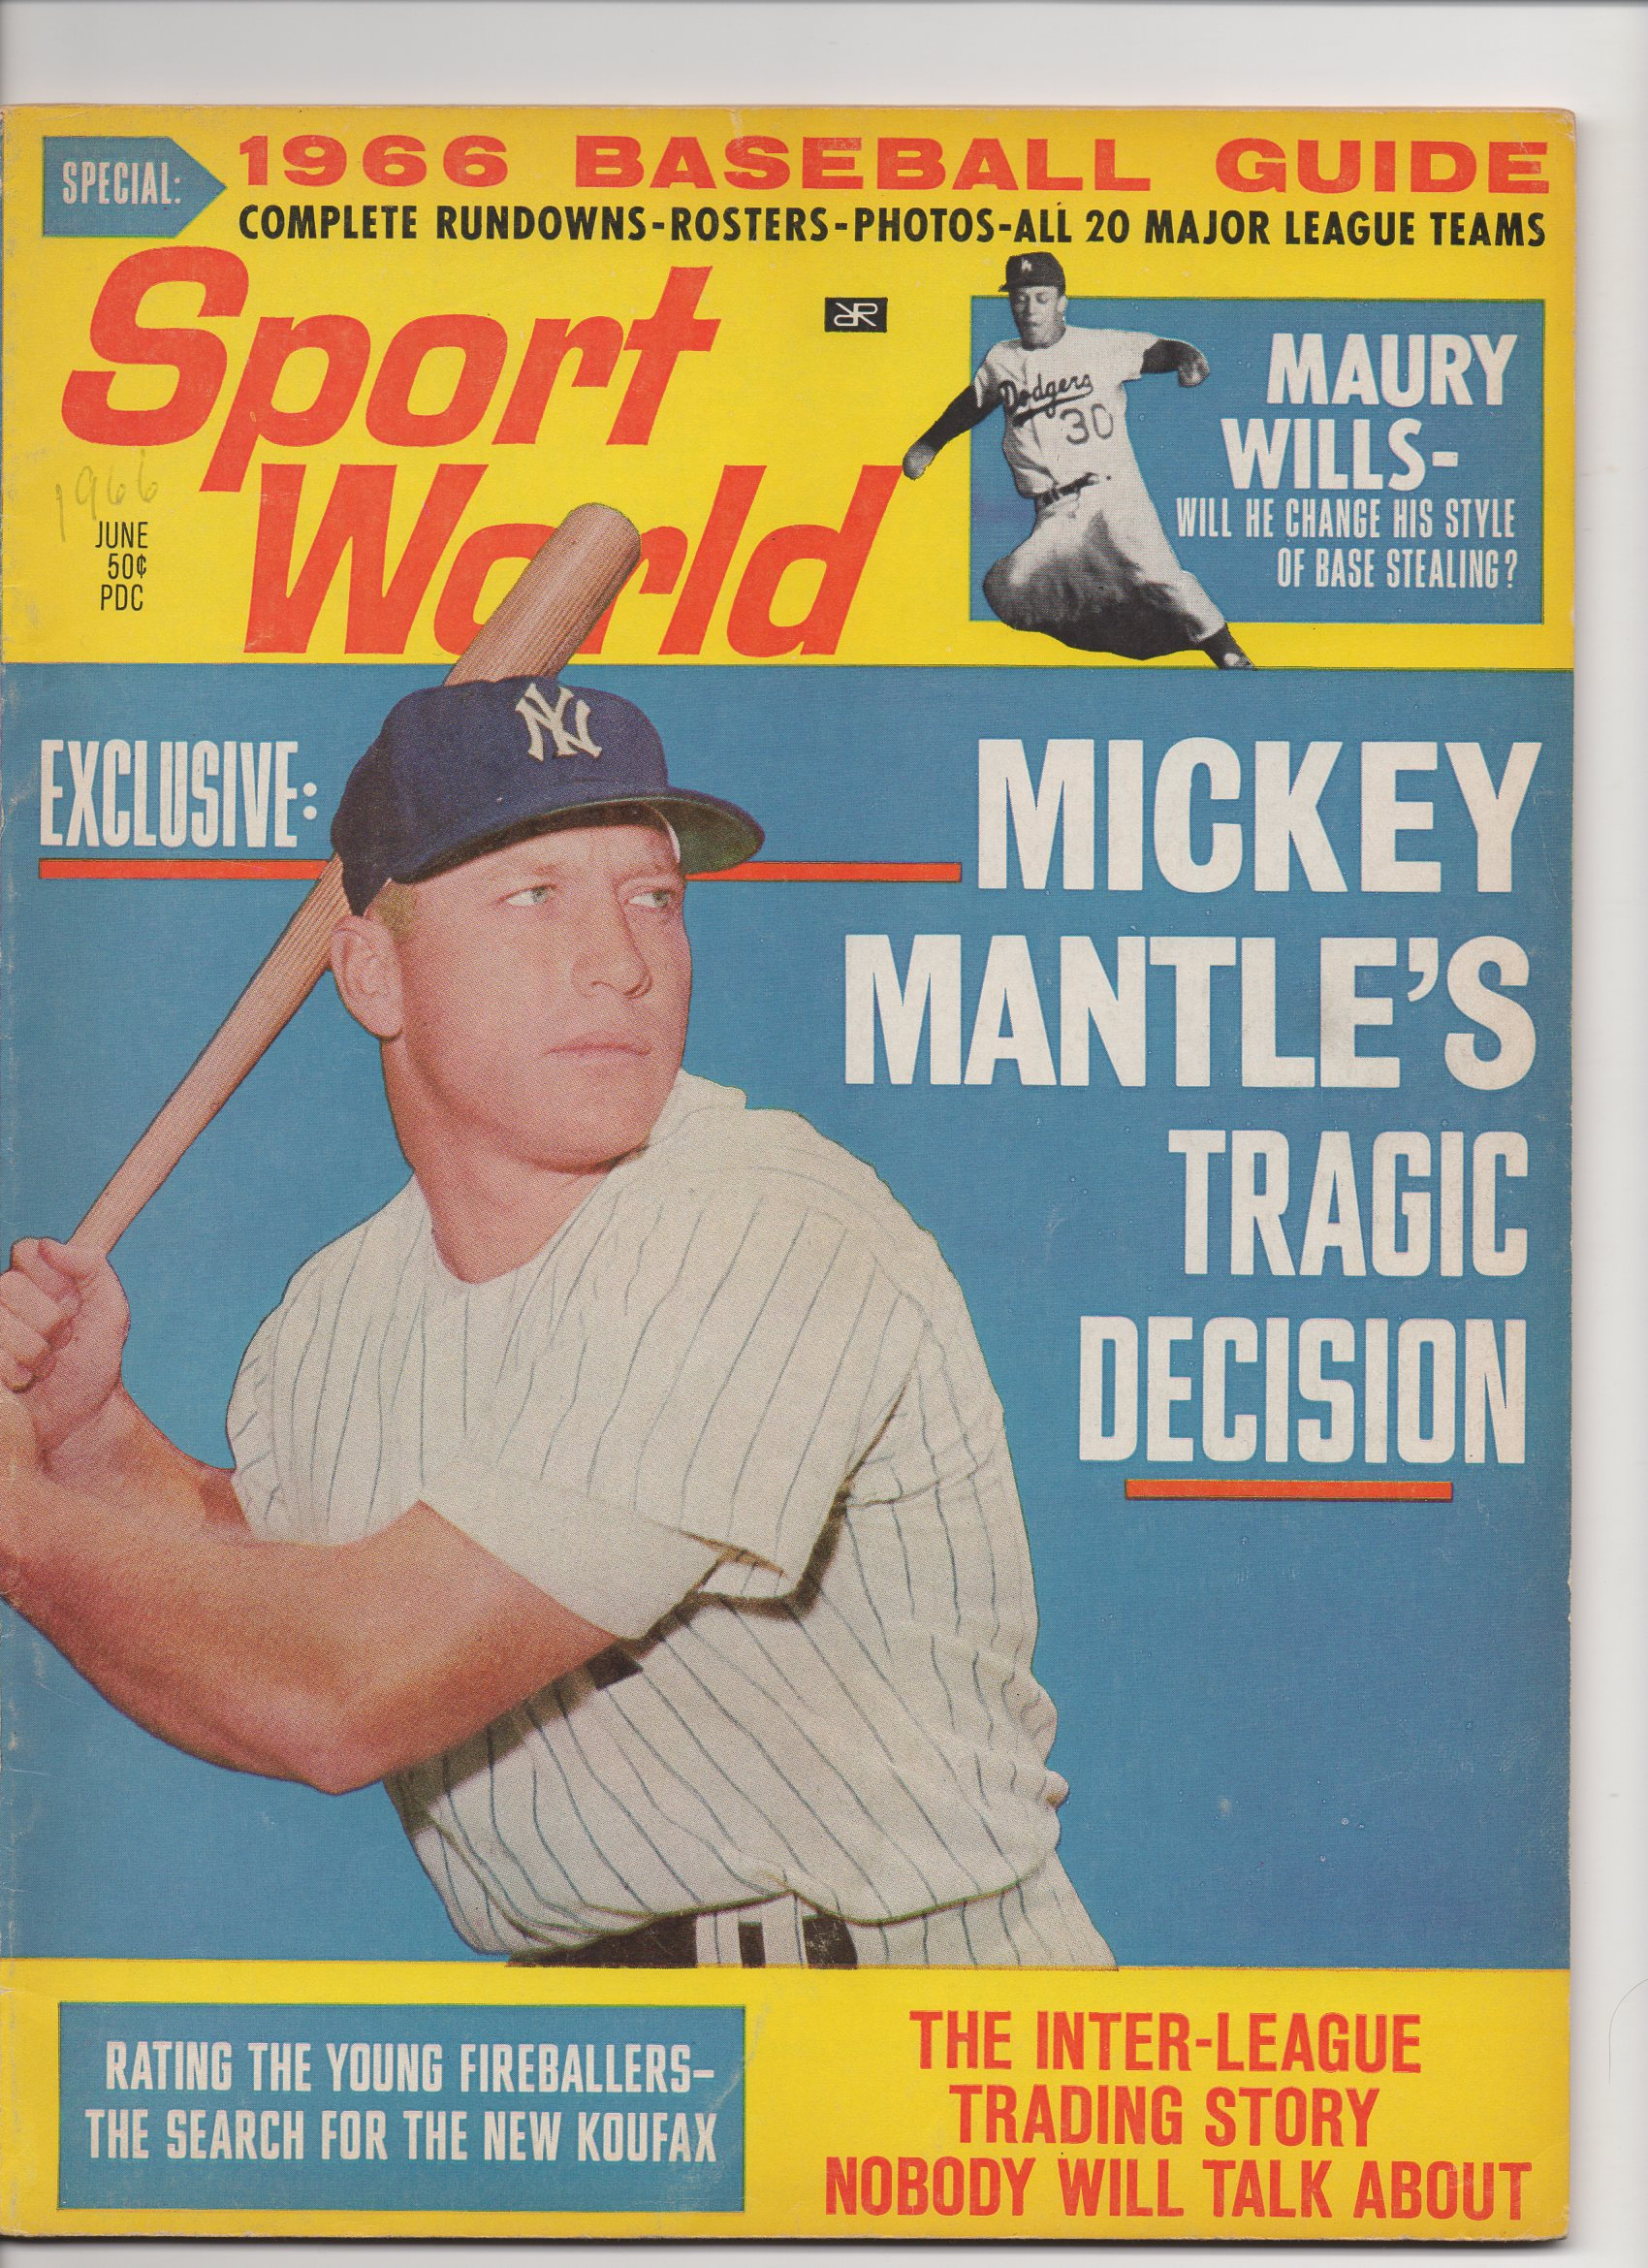 1966 sport world baseball guide, june